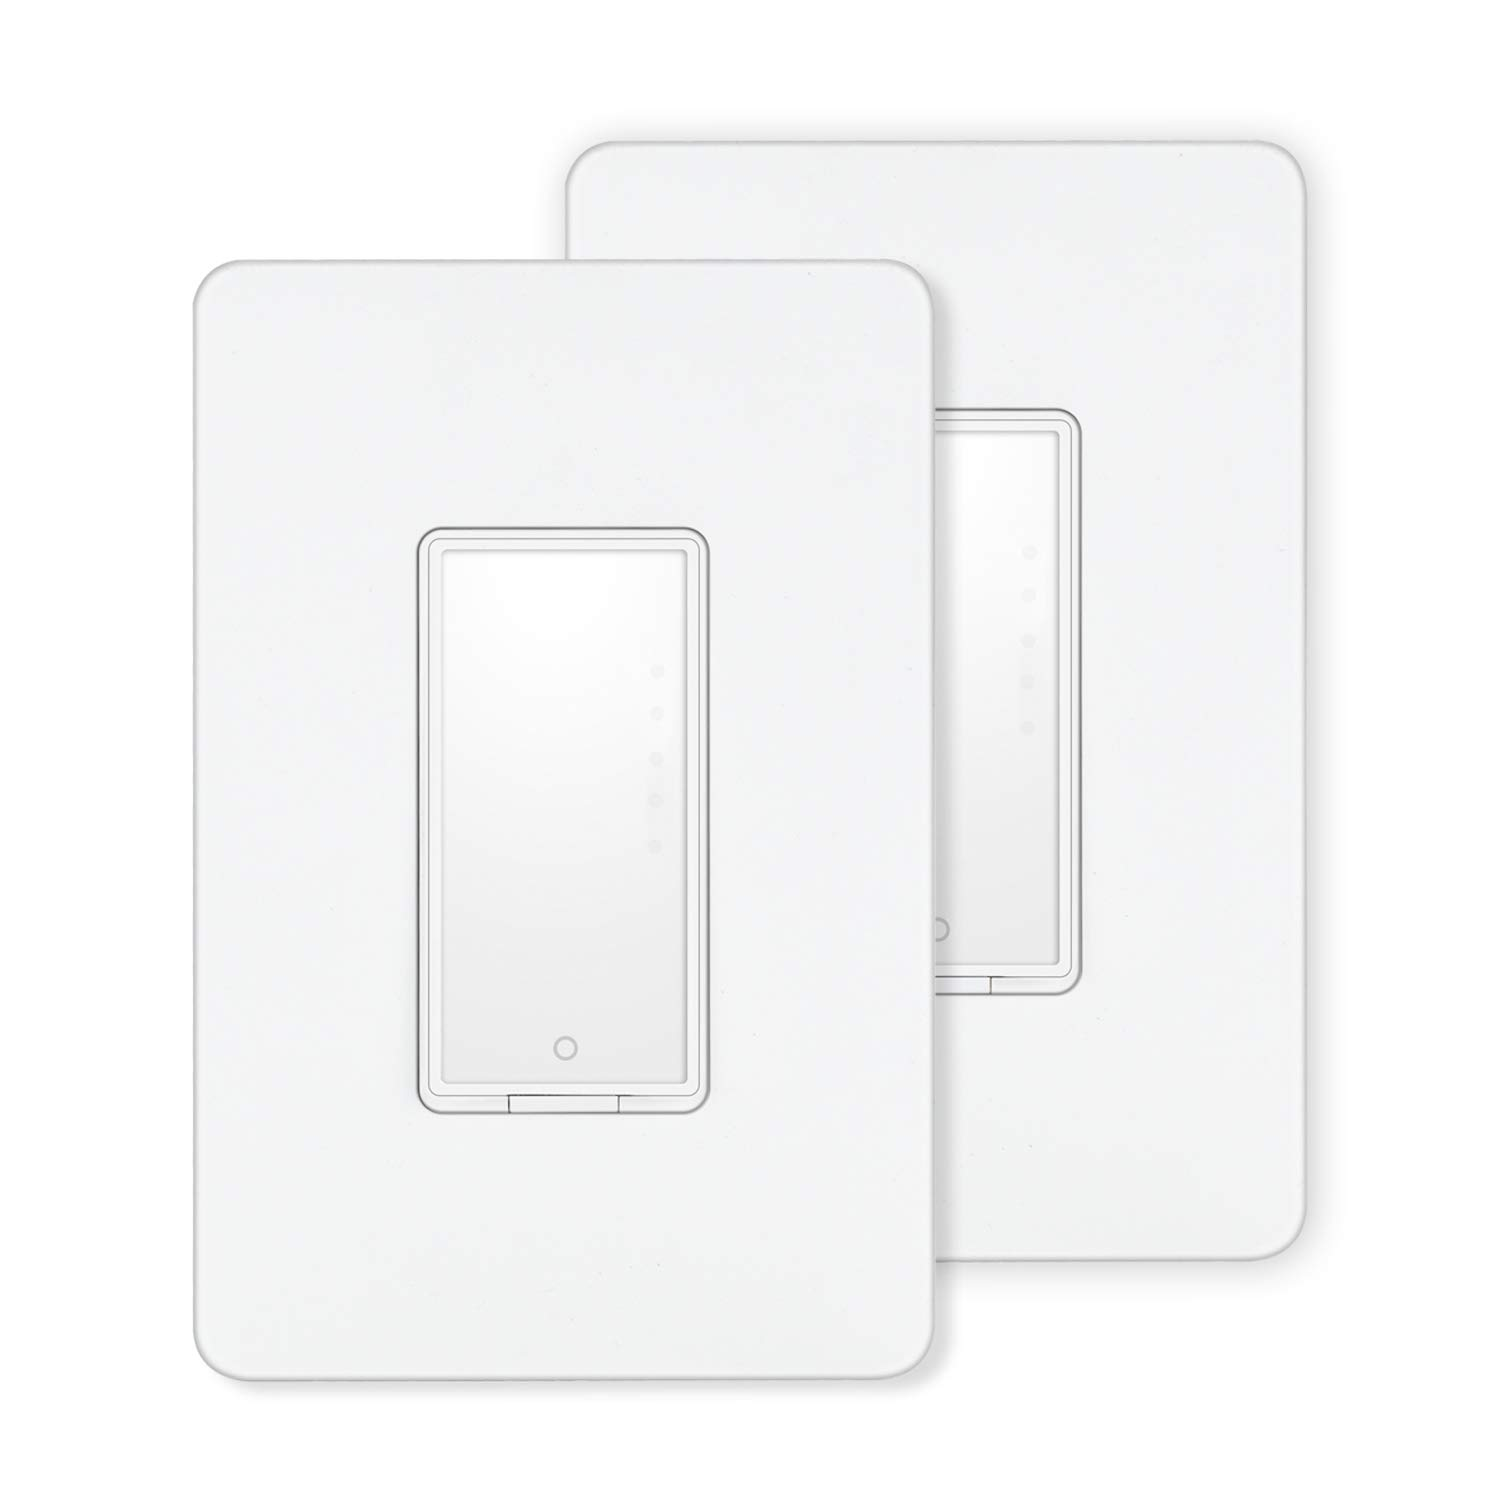 Smart Switch by MartinJerry | Compatible with Alexa, Smart Home Devices Works with Google Home, No Hub required, Easy installation and App control as Smart Switch On/Off / Timing (2 Pack)